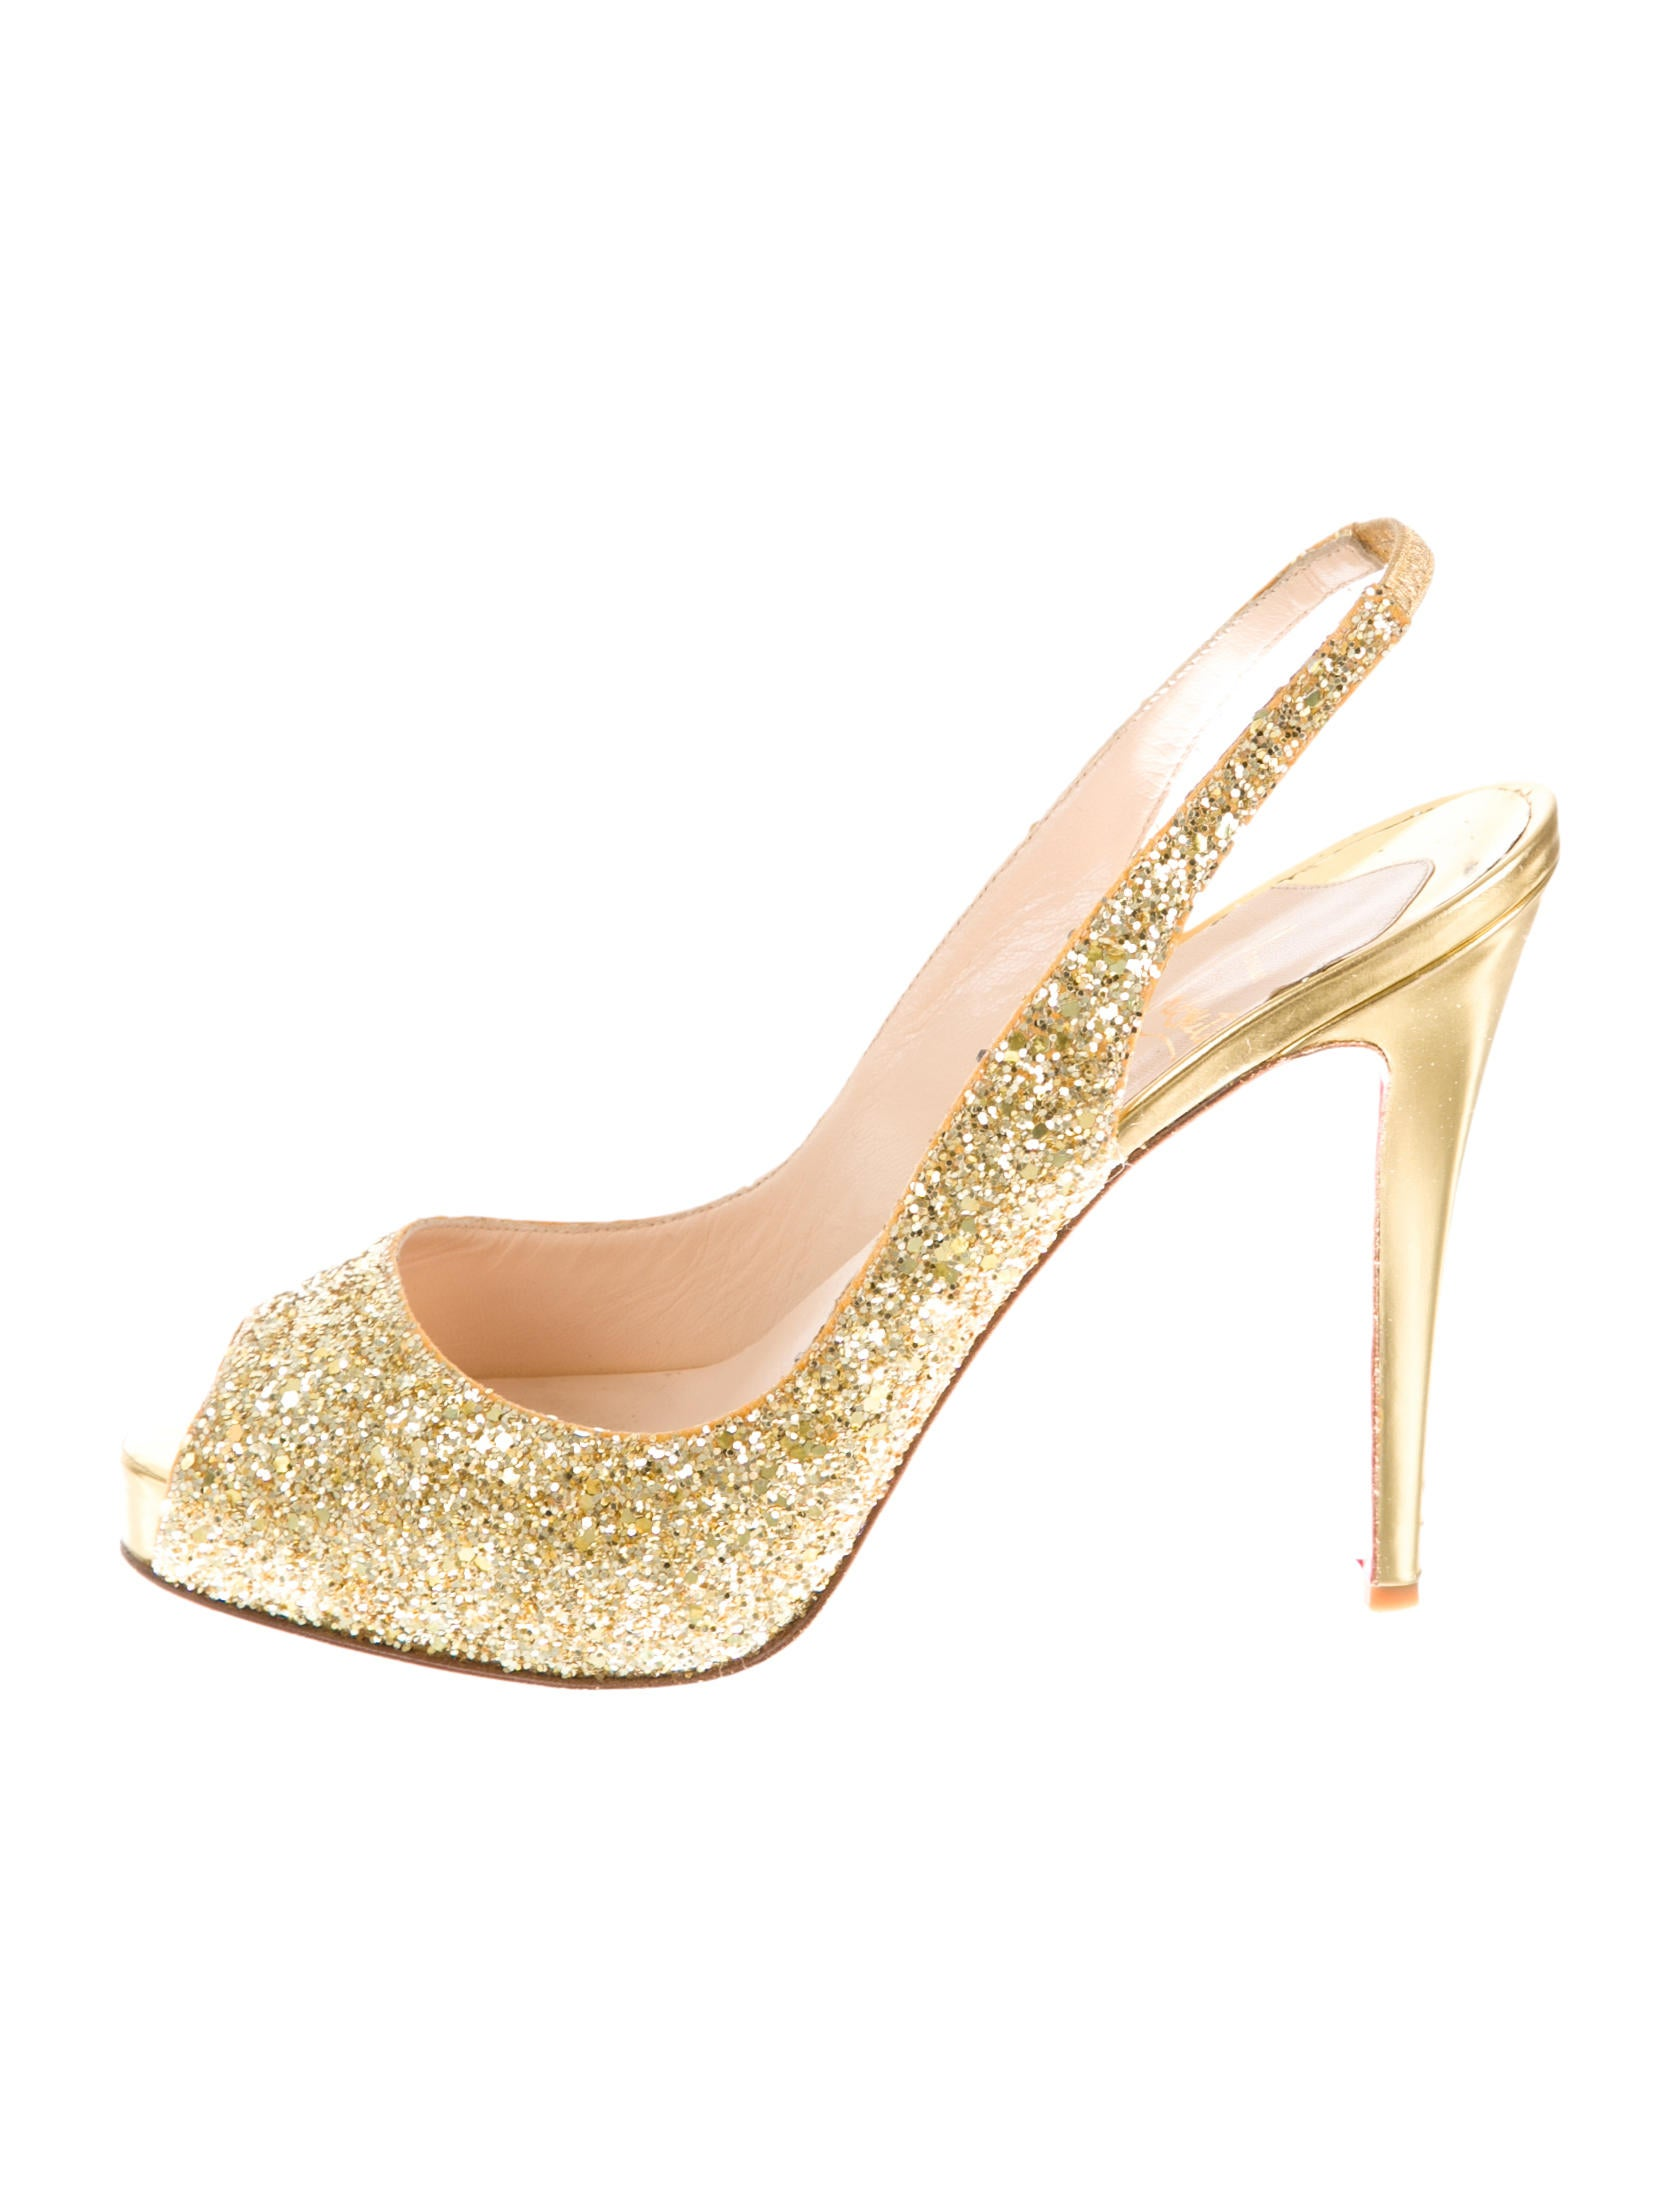 mens spiked shoes - christian louboutin pumps Gold-tone glitter peep toe | The Little ...